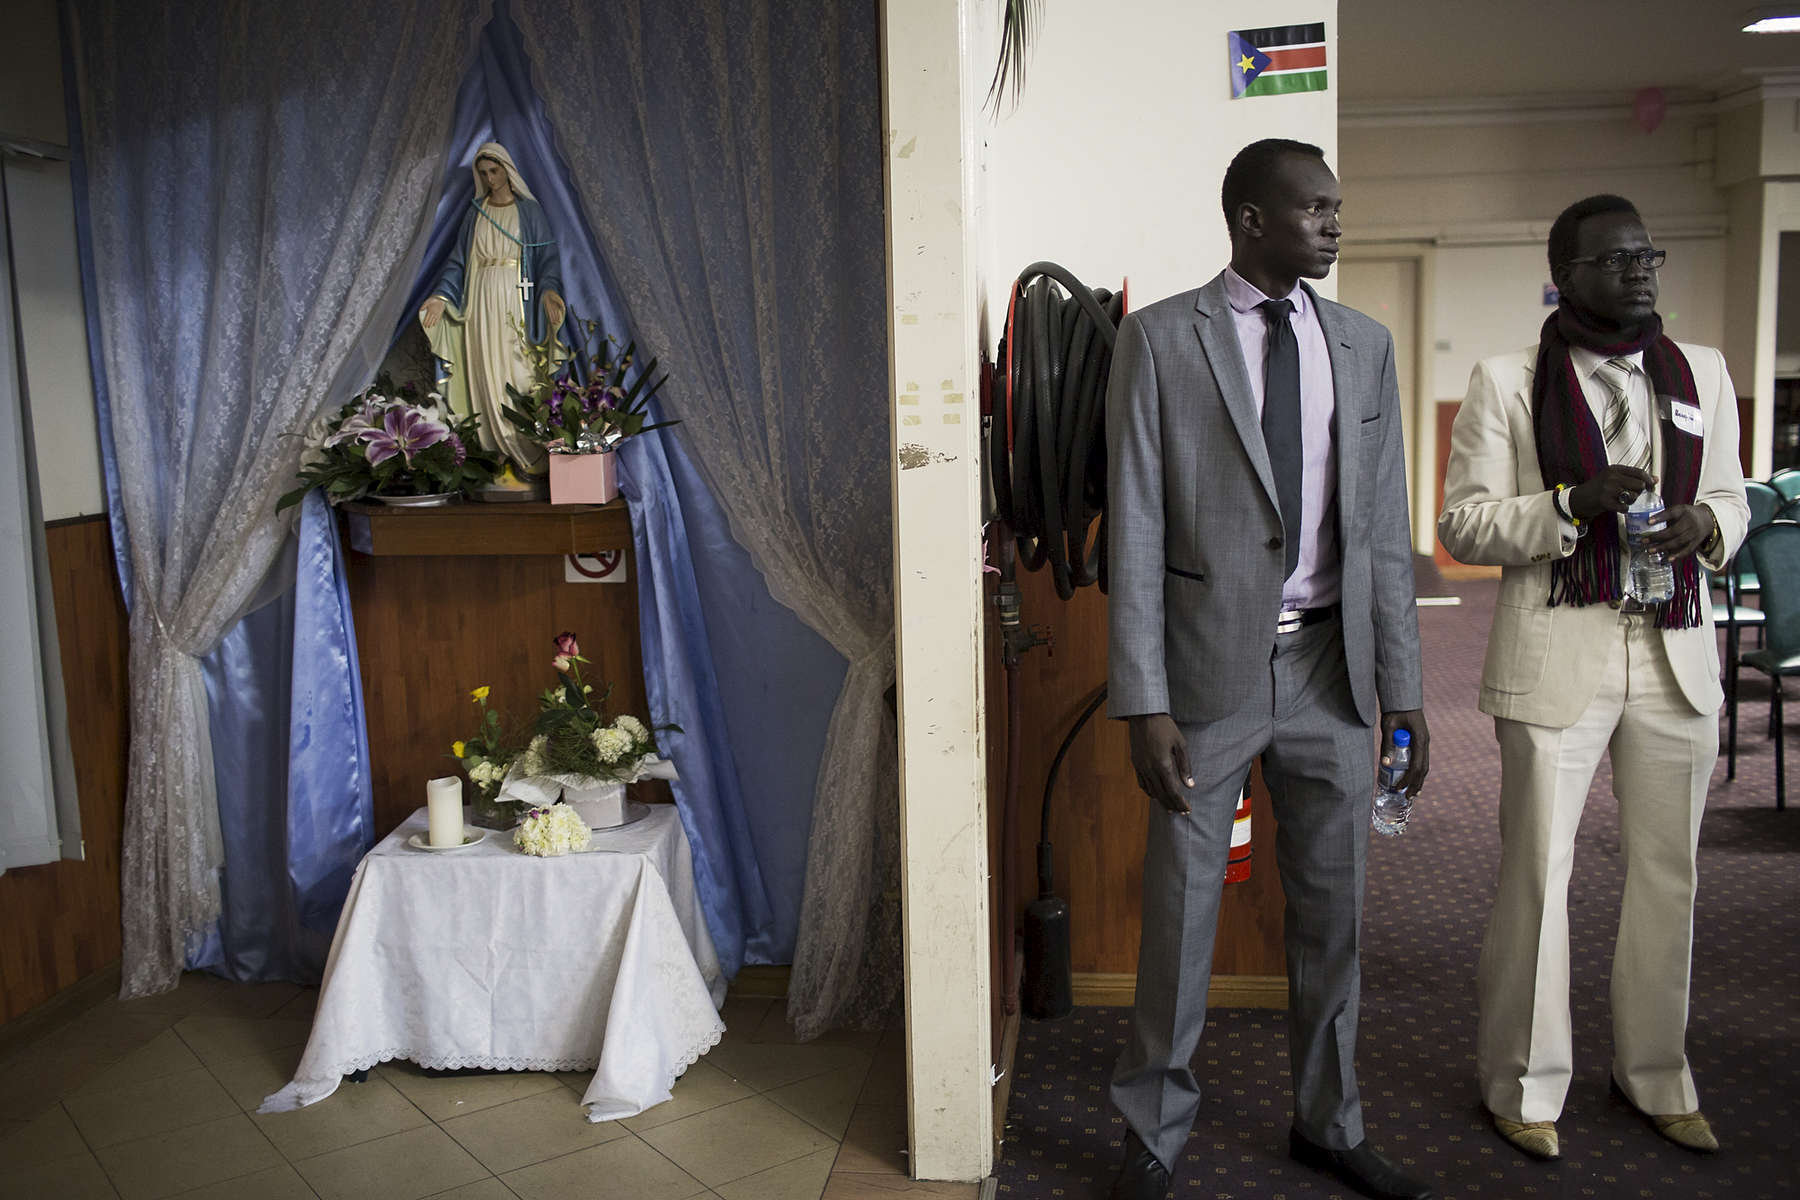 Two men stand at the door to welcome community members attending the 30th anniversary of the Sudan People's Liberation Army (SPLA) in Western Sydney in May 2013. The SPLA was founded as a guerrilla movement in 1983 and led by John Garang de Mabior until his death in 2005. Not long after South Sudan's independence in 2011, the world's newest nation was once again plunged into conflict after a falling out between Dinka President Kiir and Nuer former Vice-President Machar turned rebel leader. After a 15-month civil war that has killed thousands, many hope the most recent peace deal can last.